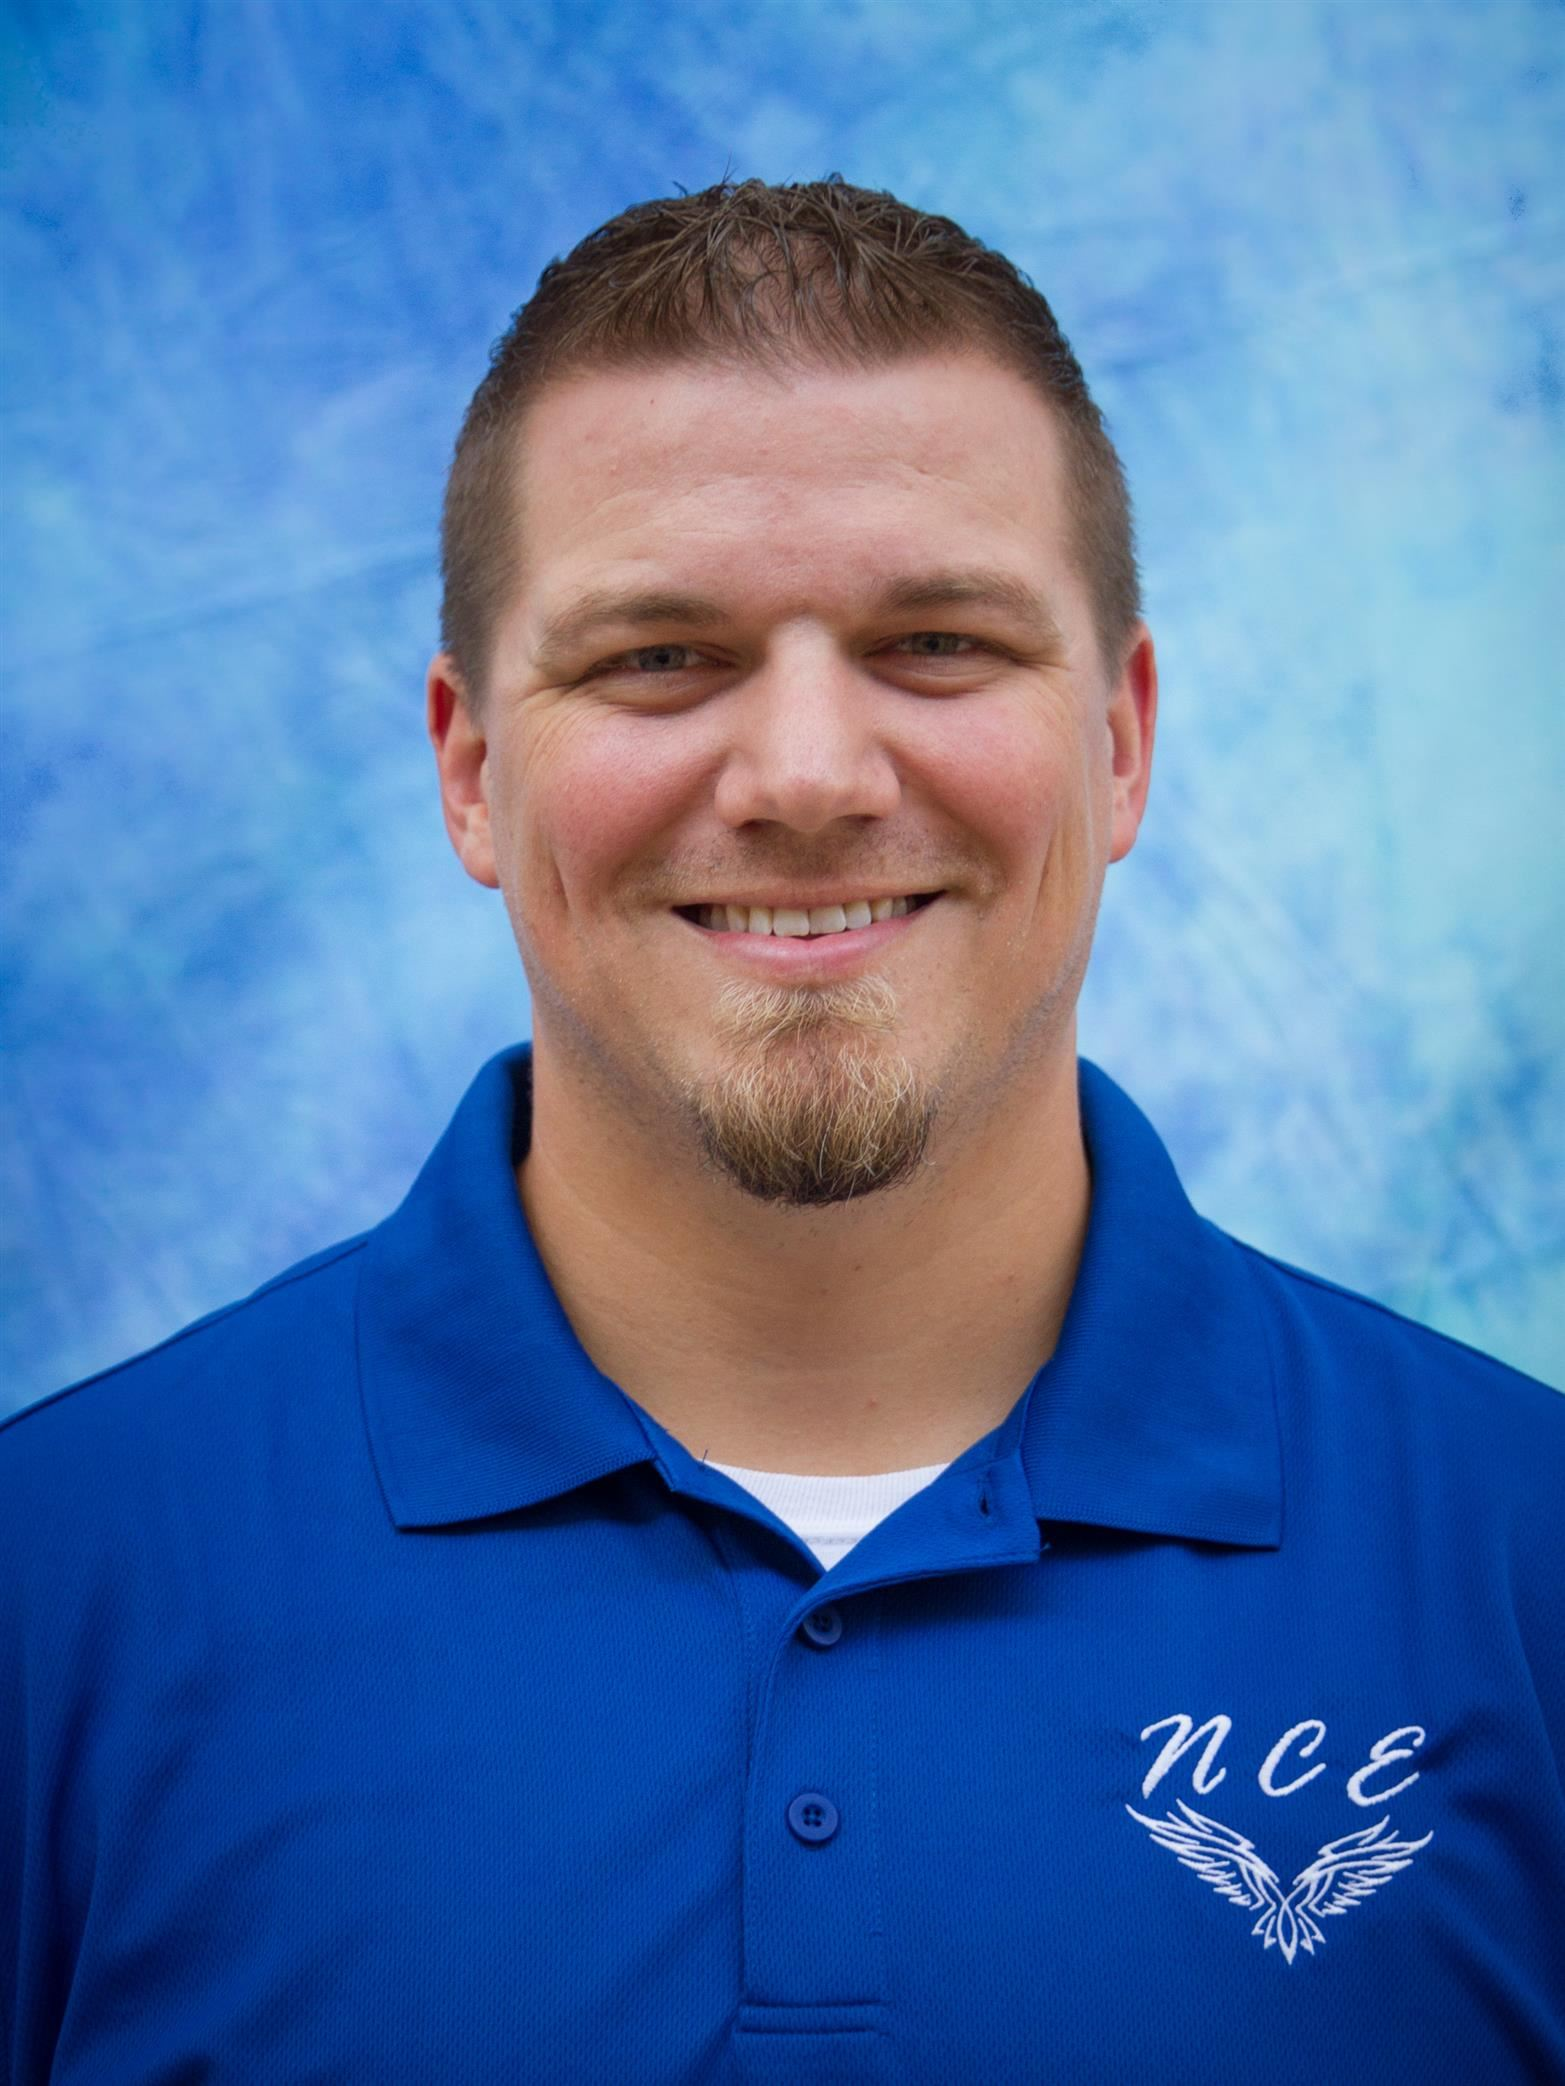 Mr. Andrew Kruger - Assistant Principal - Campus Behavior Coordinator